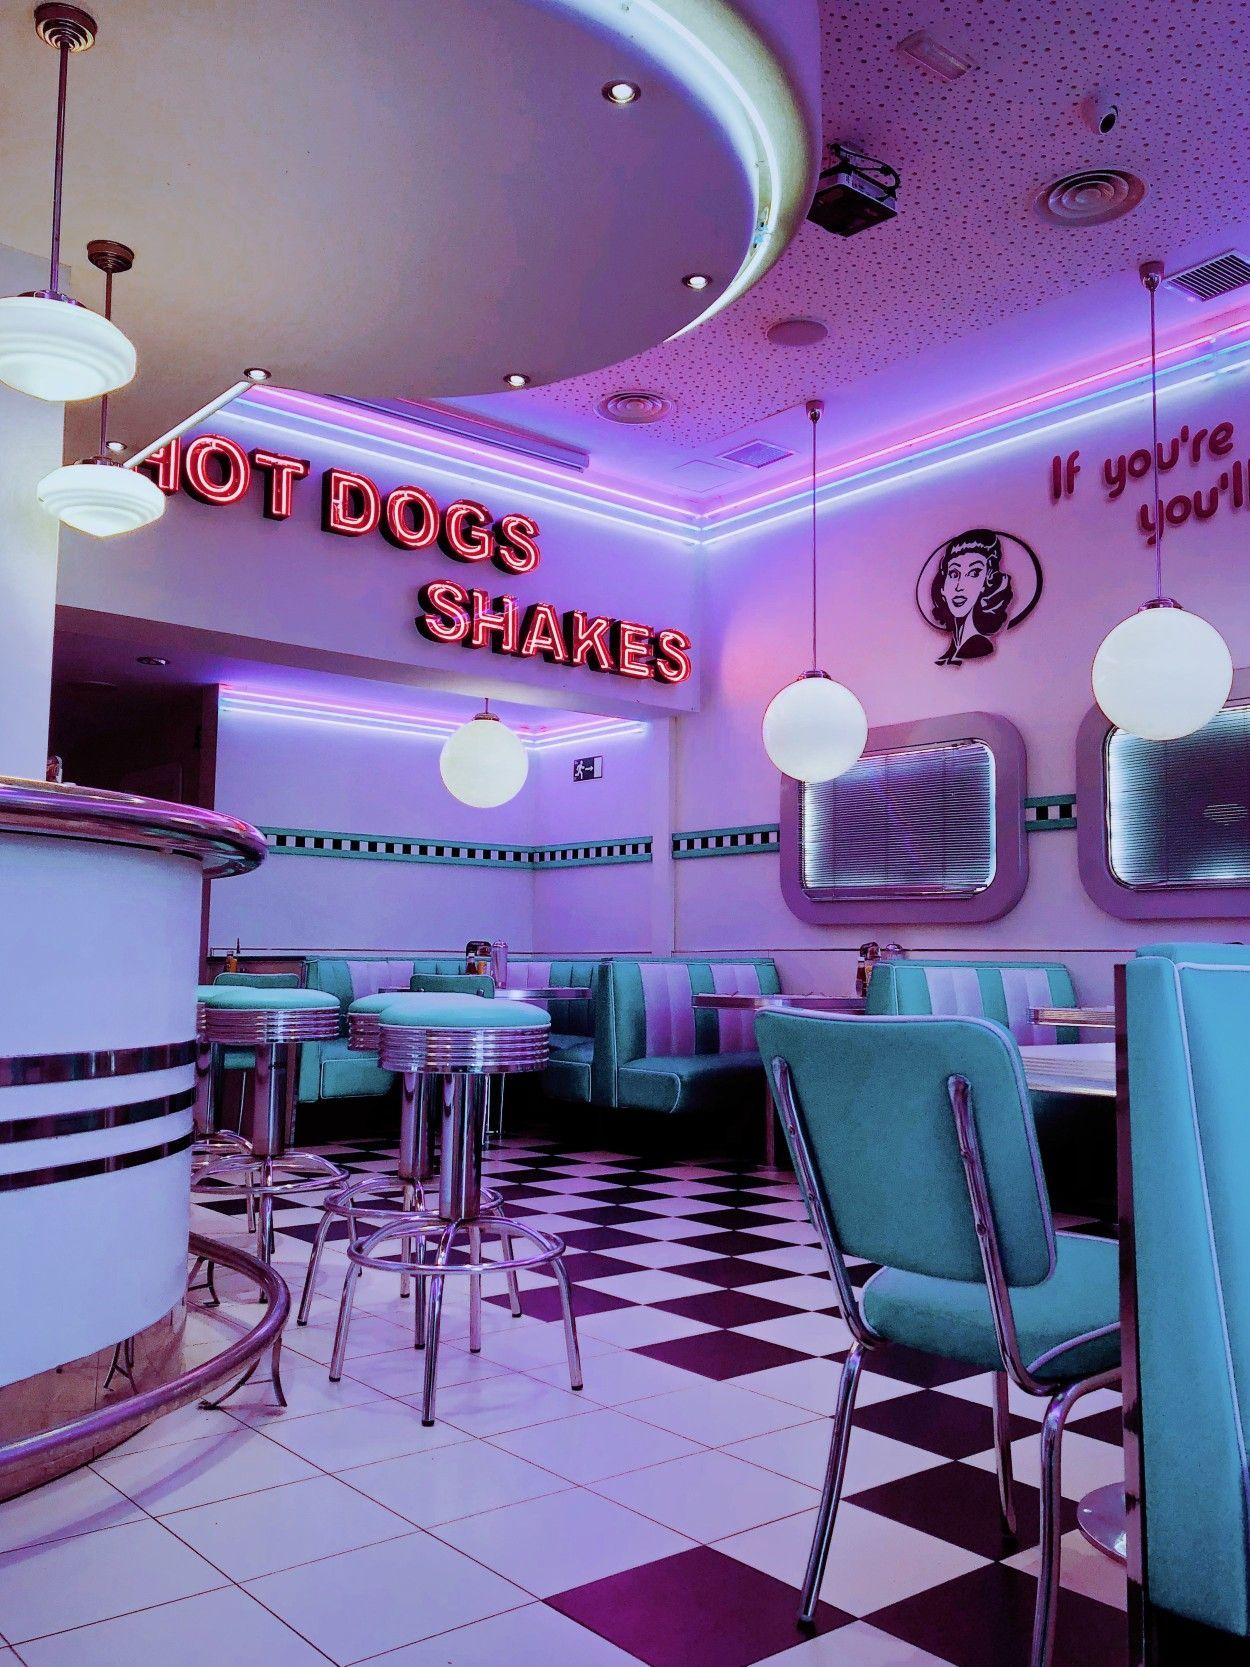 Pin By Kelly29grant4 On Diner In 2020 Diner Aesthetic Retro Wallpaper Neon Aesthetic